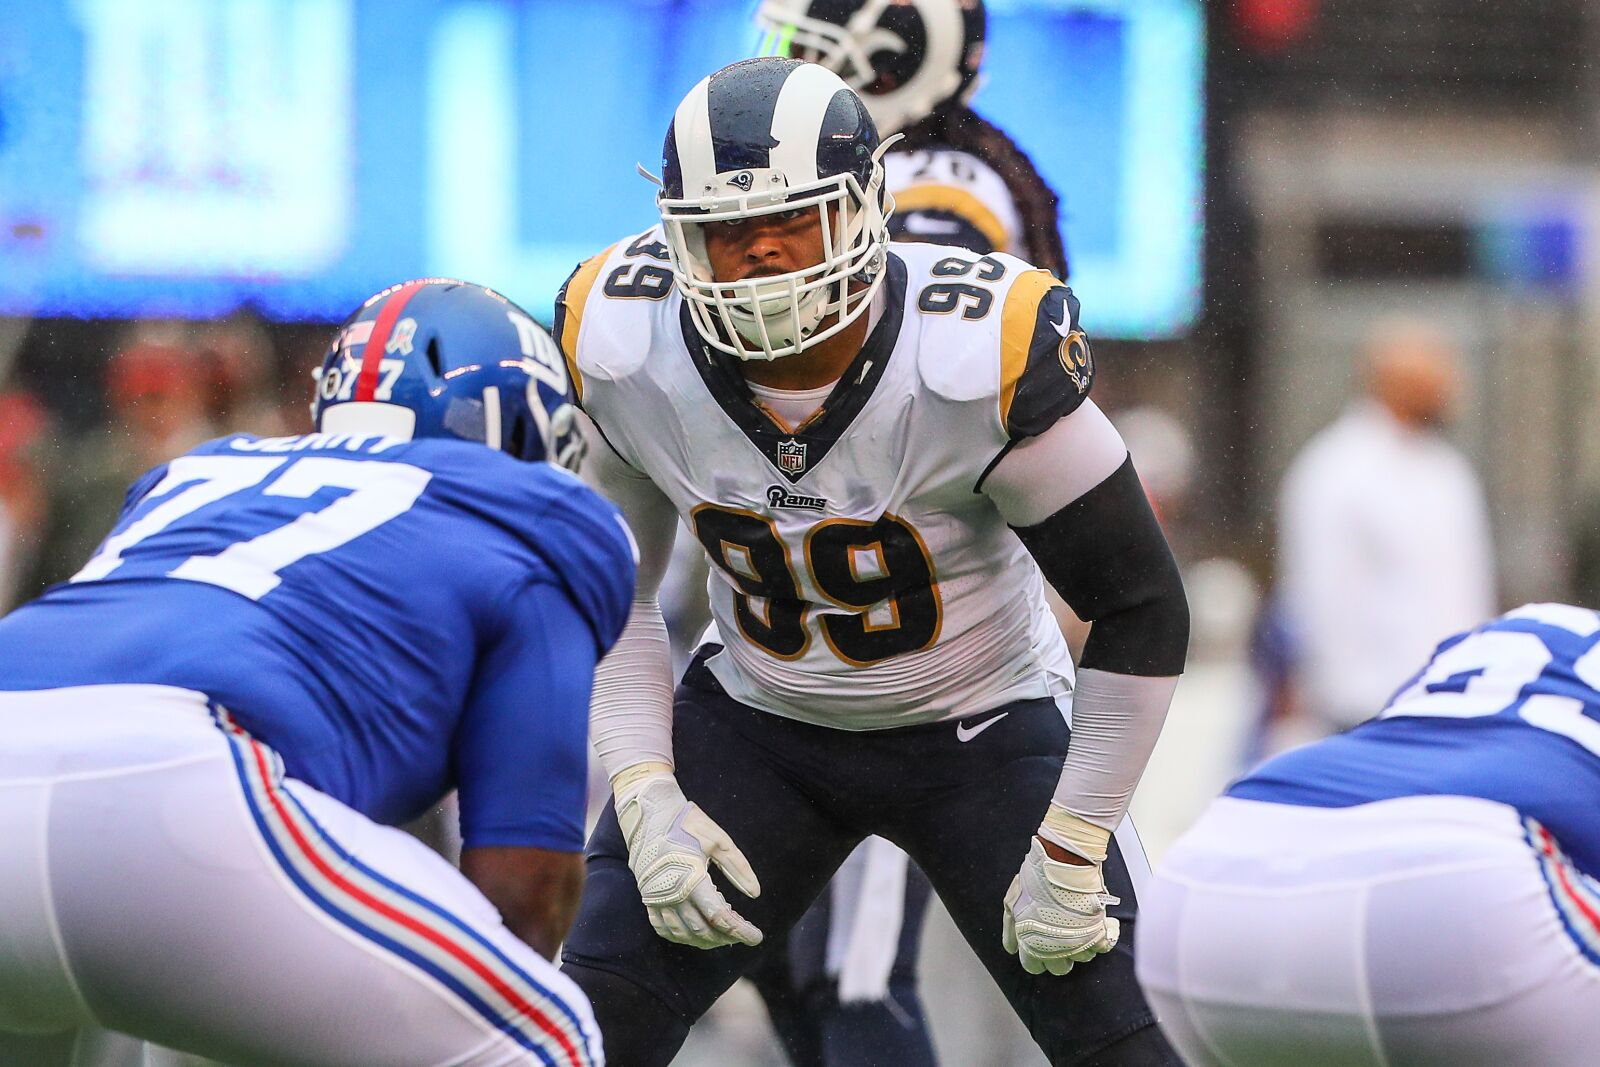 EAST RUTHERFORD, NJ - NOVEMBER 05: Los Angeles Rams defensive end Aaron Donald (99) during the National Football League game between the New York Giants and the Los Angeles Rams on November 5, 2017, at Met Life Stadium in East Rutherford, NJ. (Photo by Rich Graessle/Icon Sportswire via Getty Images)